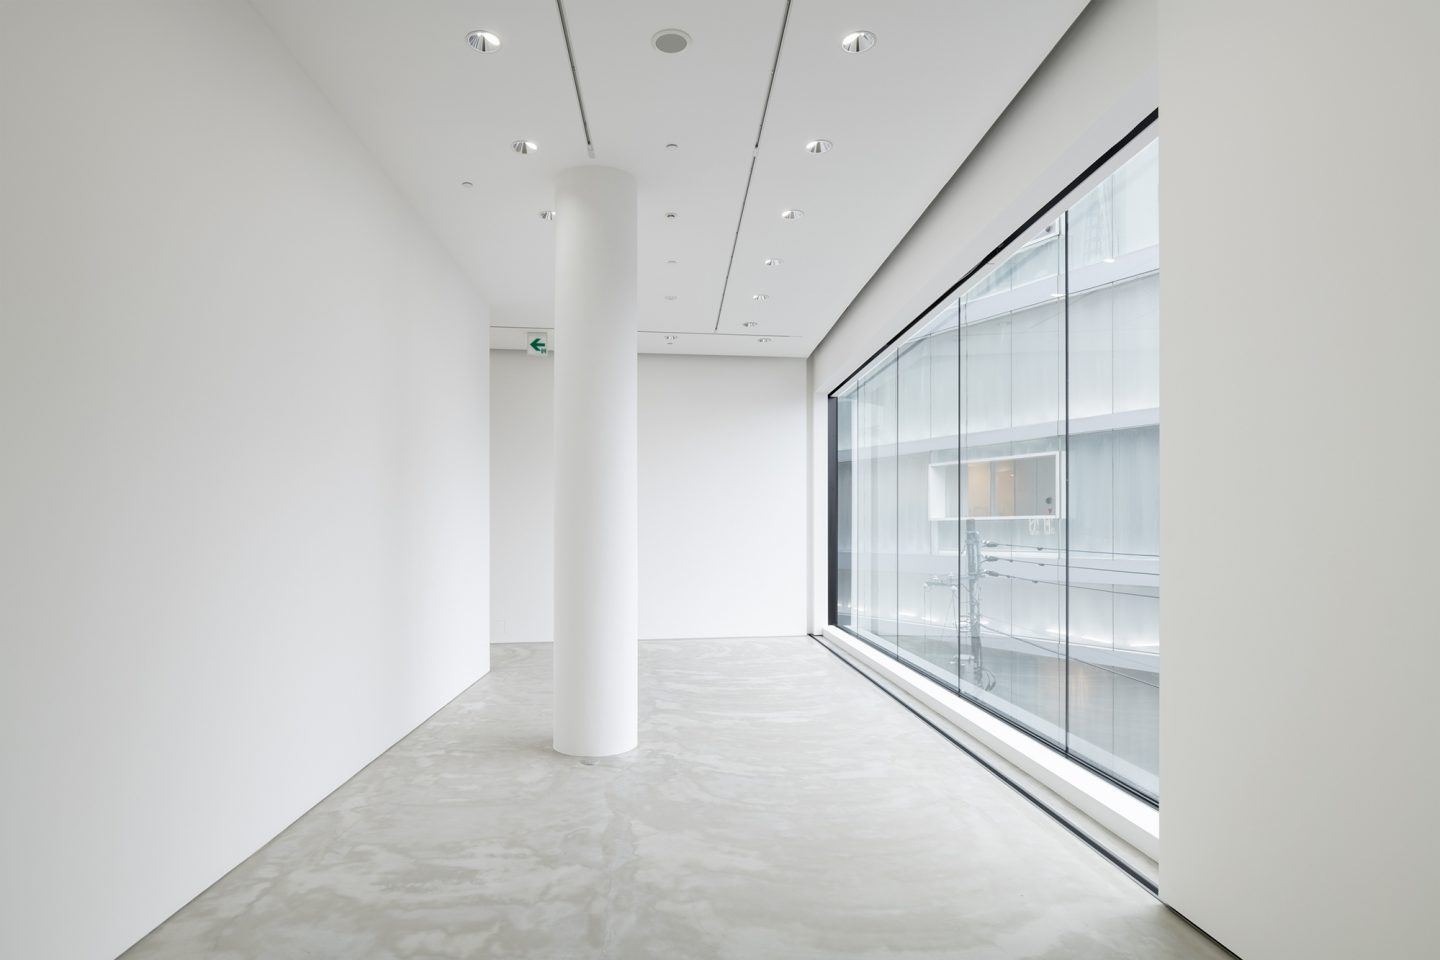 Gyre Gallery, Tokyo, J. Hildebrand Studios AG, Architecture and Urban Design in Zurich, Switzerland